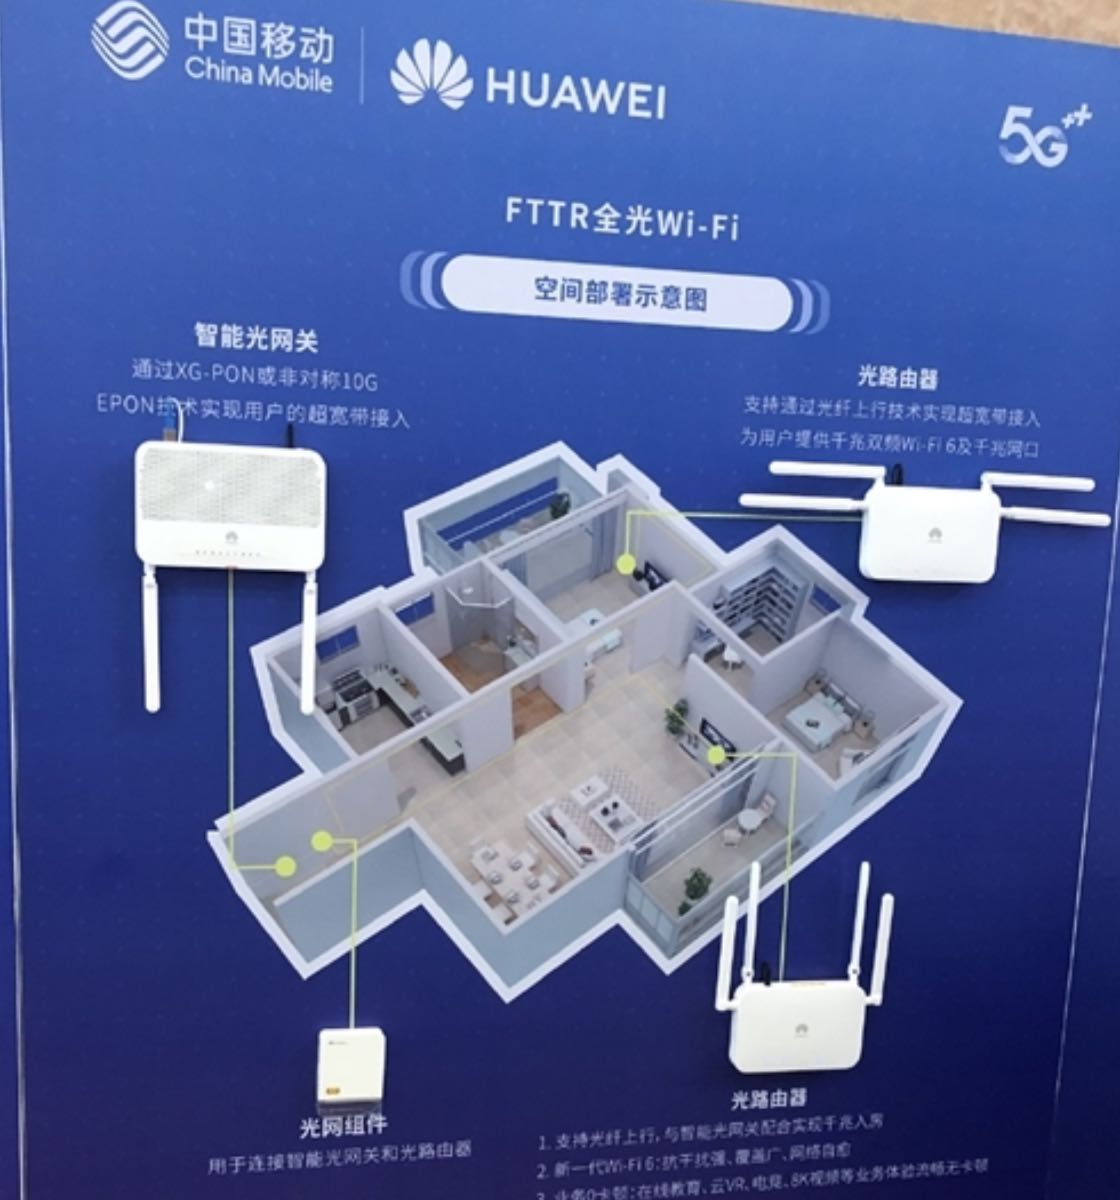 huawei fttr fiber to the room